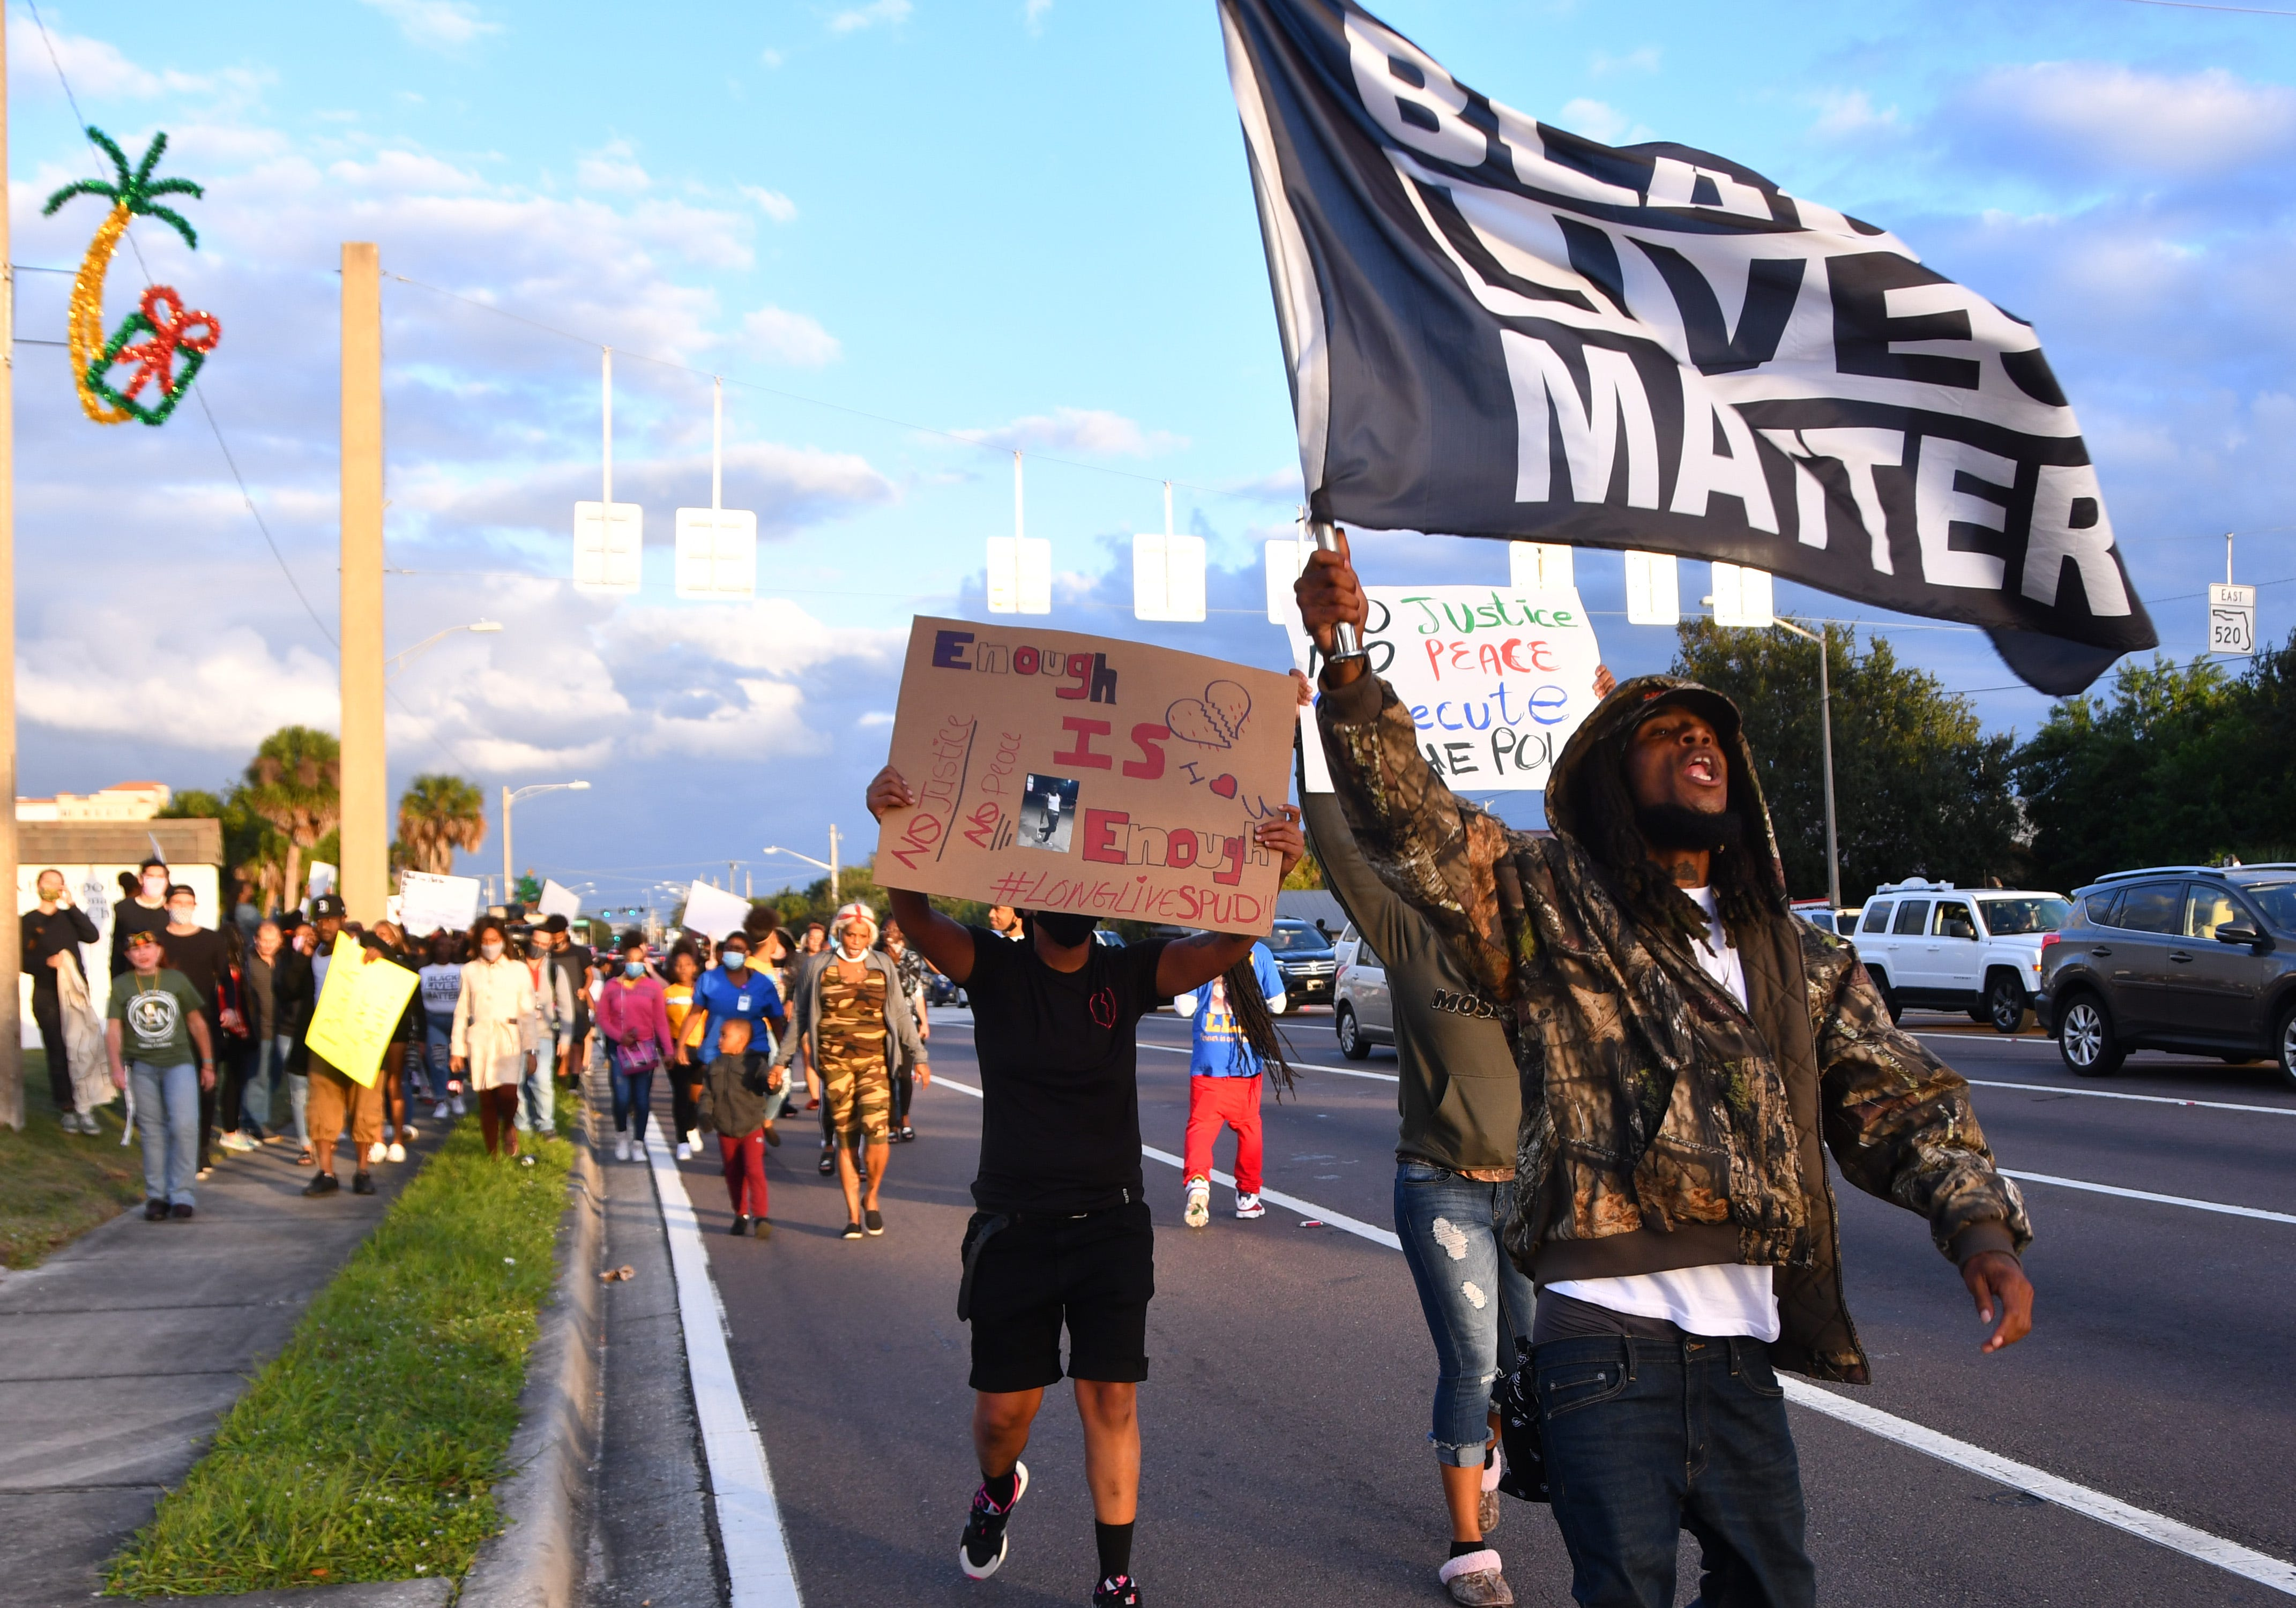 Benjamin Crump demands justice after a Florida deputy shot two Black teens. Here s what we know